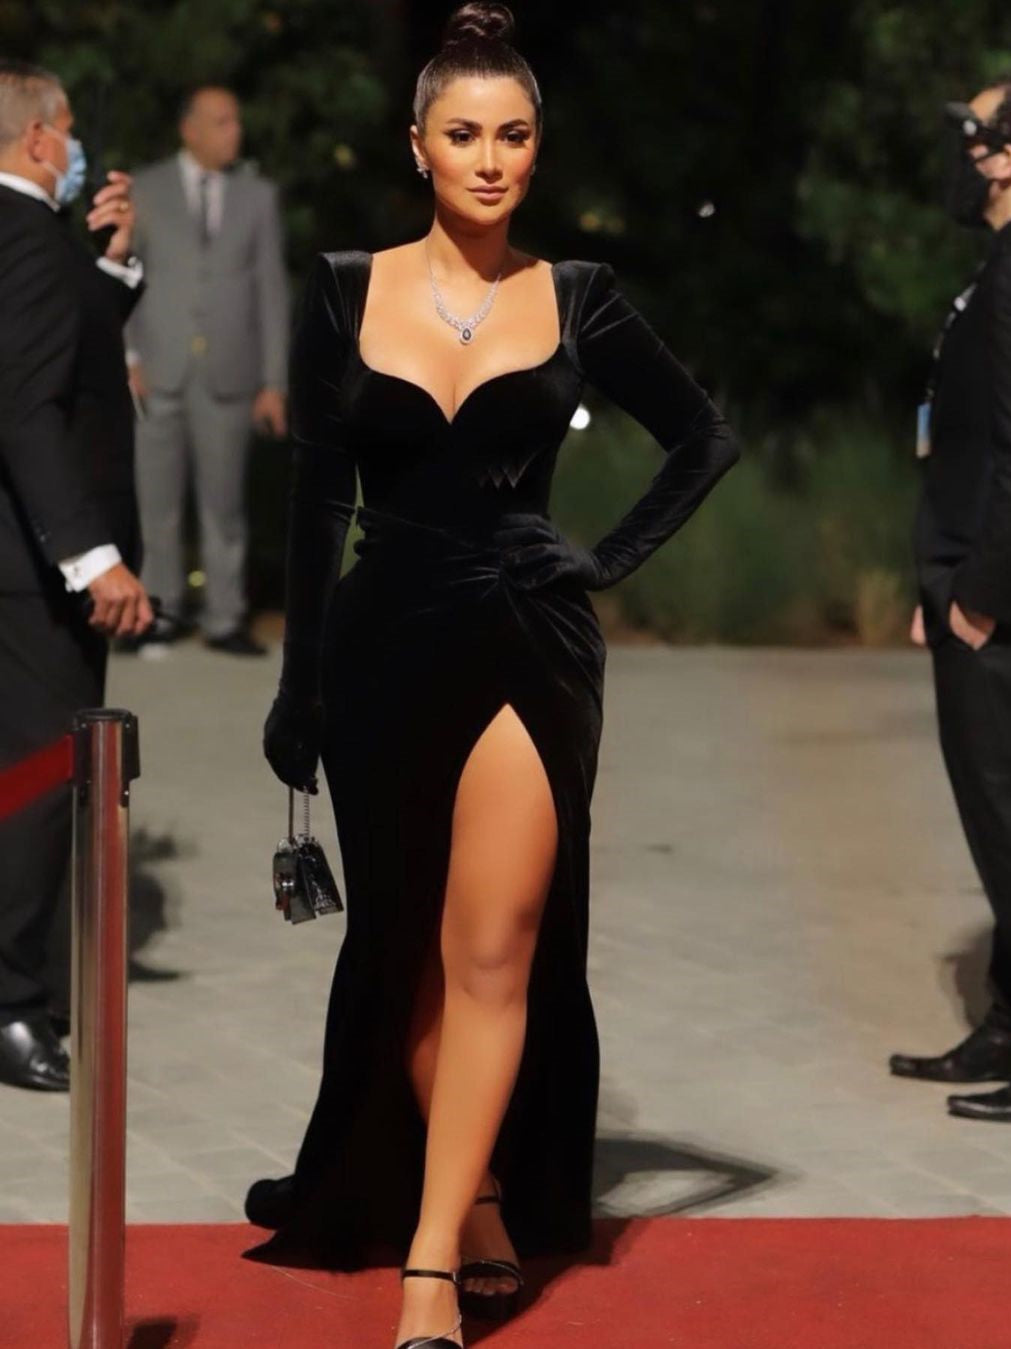 Long Sleeves Velvet Side Slit Prom Dresses, Sexy Long Prom Dresses, 2021 Black Prom Dresses